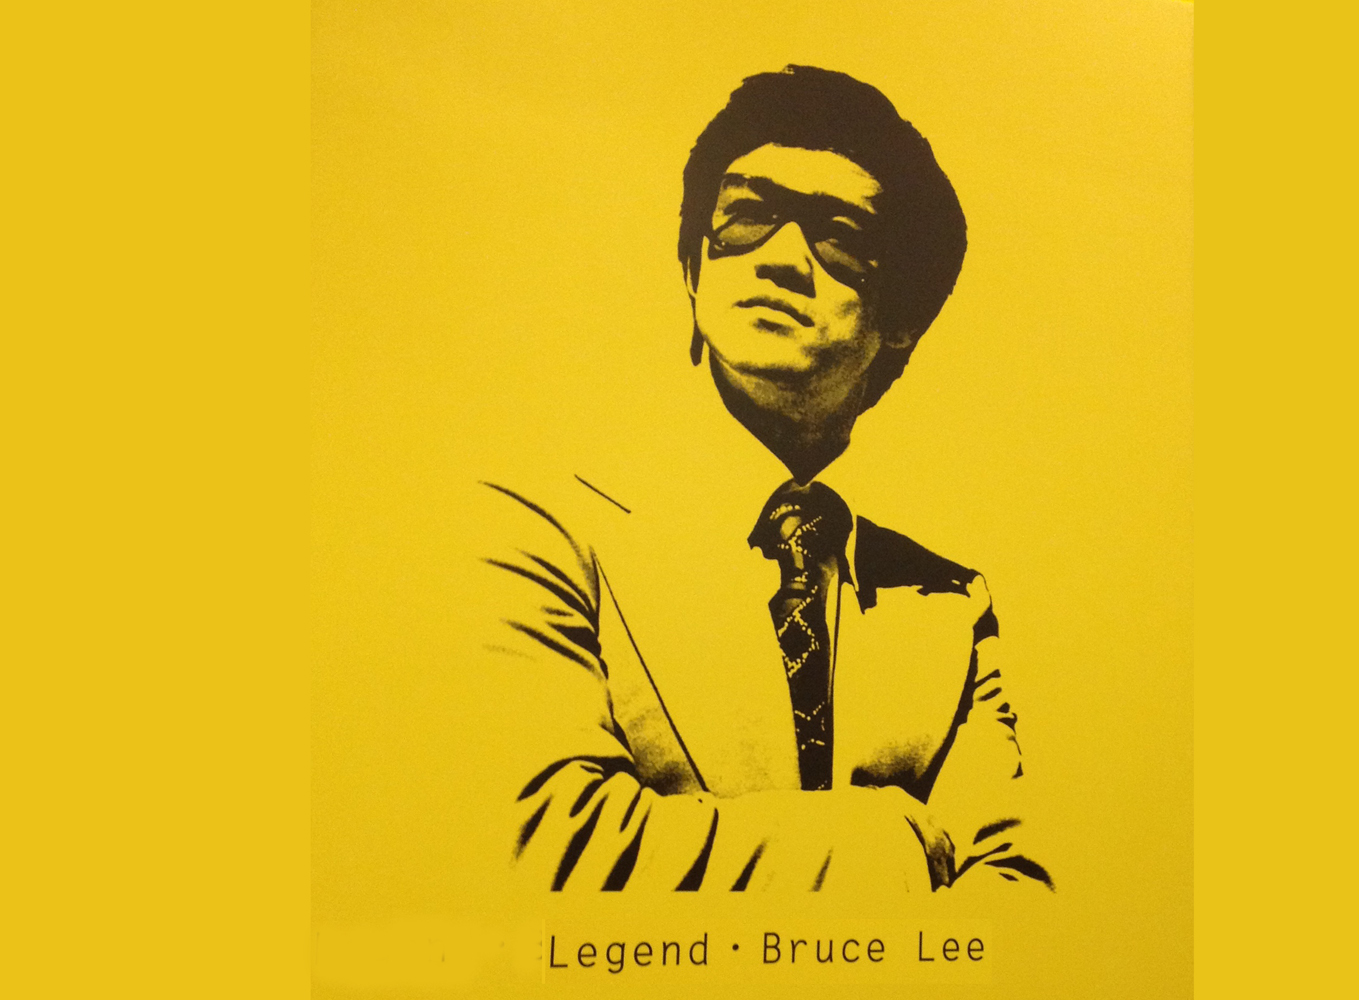 Hustle Quotes Wallpaper Bruce Lee Exhibition At Hong Kong Heritage Museum Opens